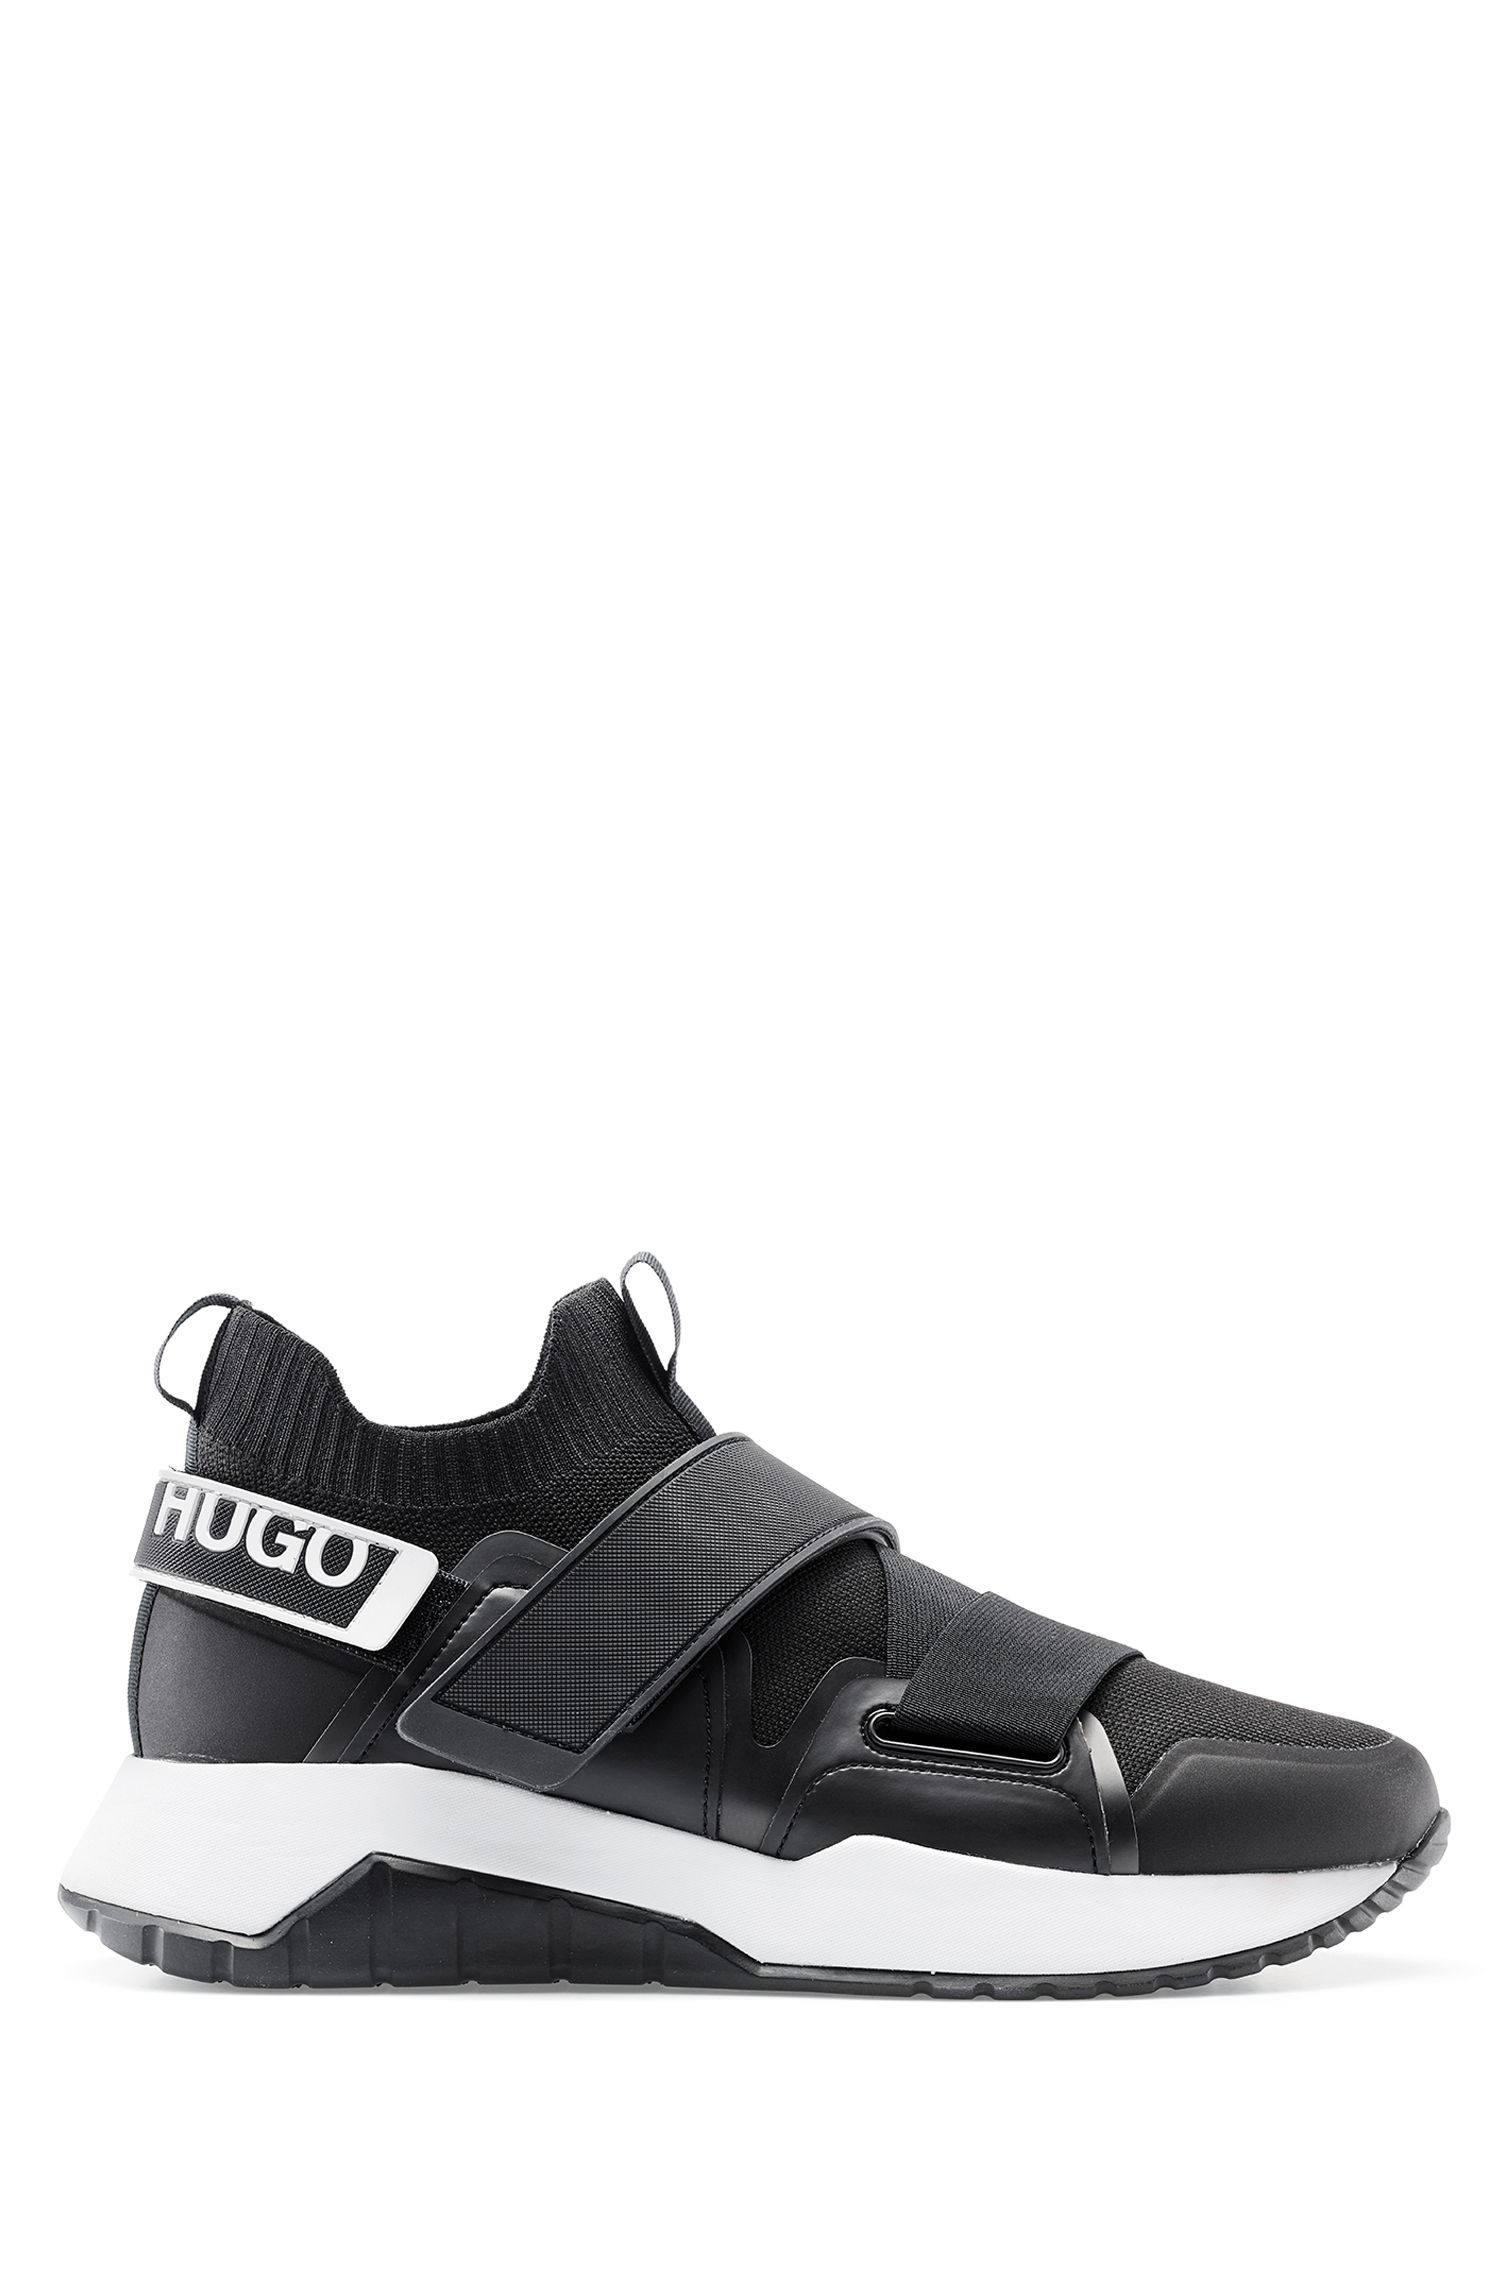 Sock-style trainers with branded touch-fastening strap, Black